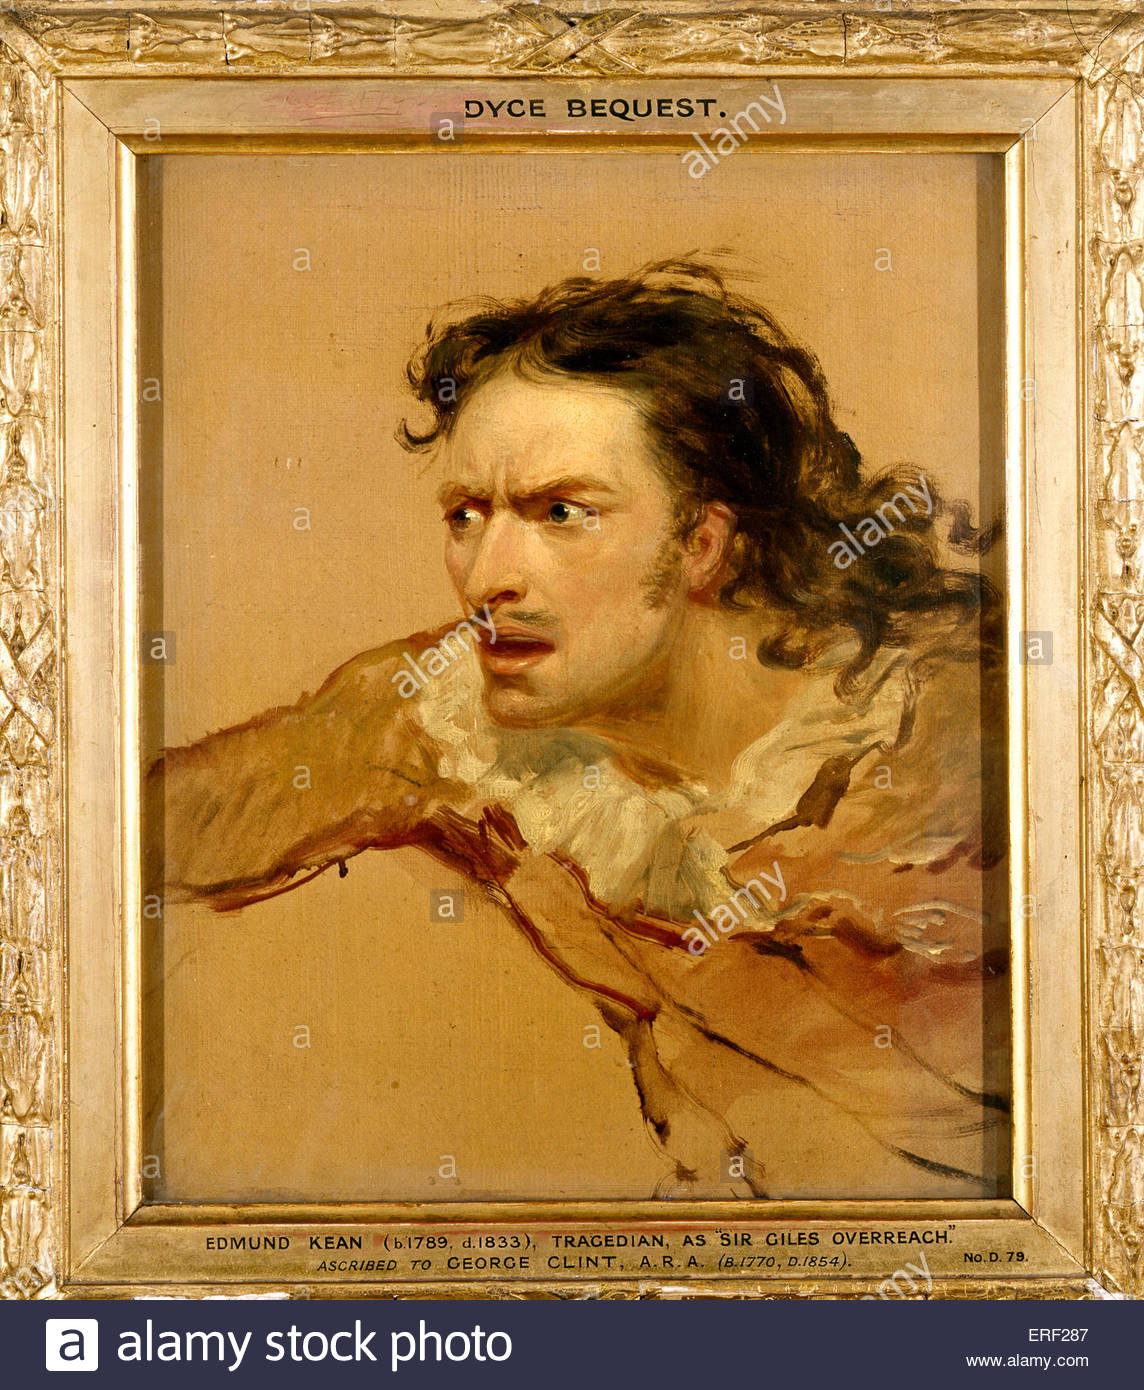 Edmund Kean as 'Sir Giles Overreach'. English actor and tragedian 1787 - 1833. Play by  Philip Massinger - Stock Image